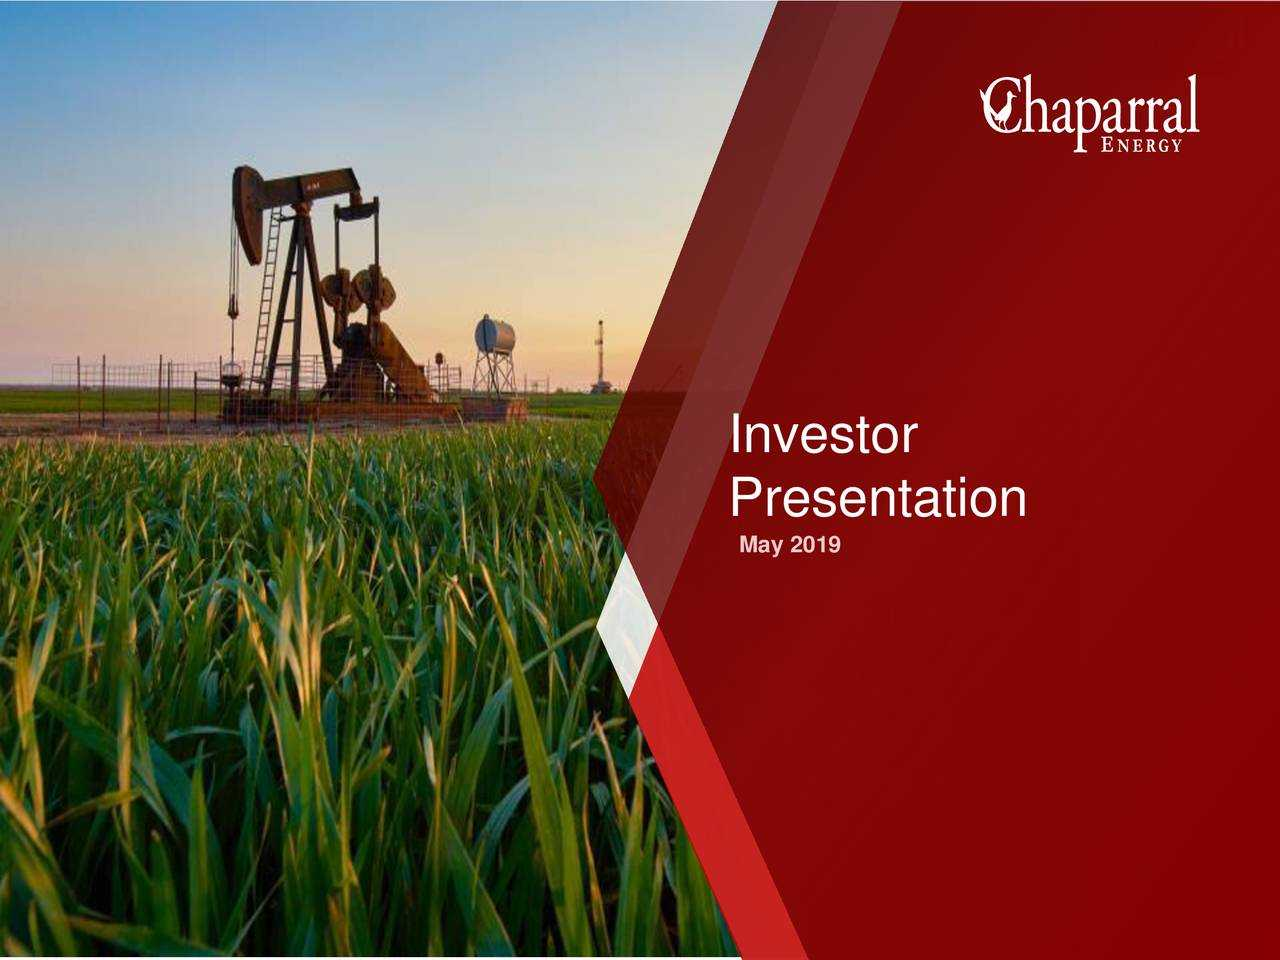 Chaparral Energy (CHAP) Investor Presentation